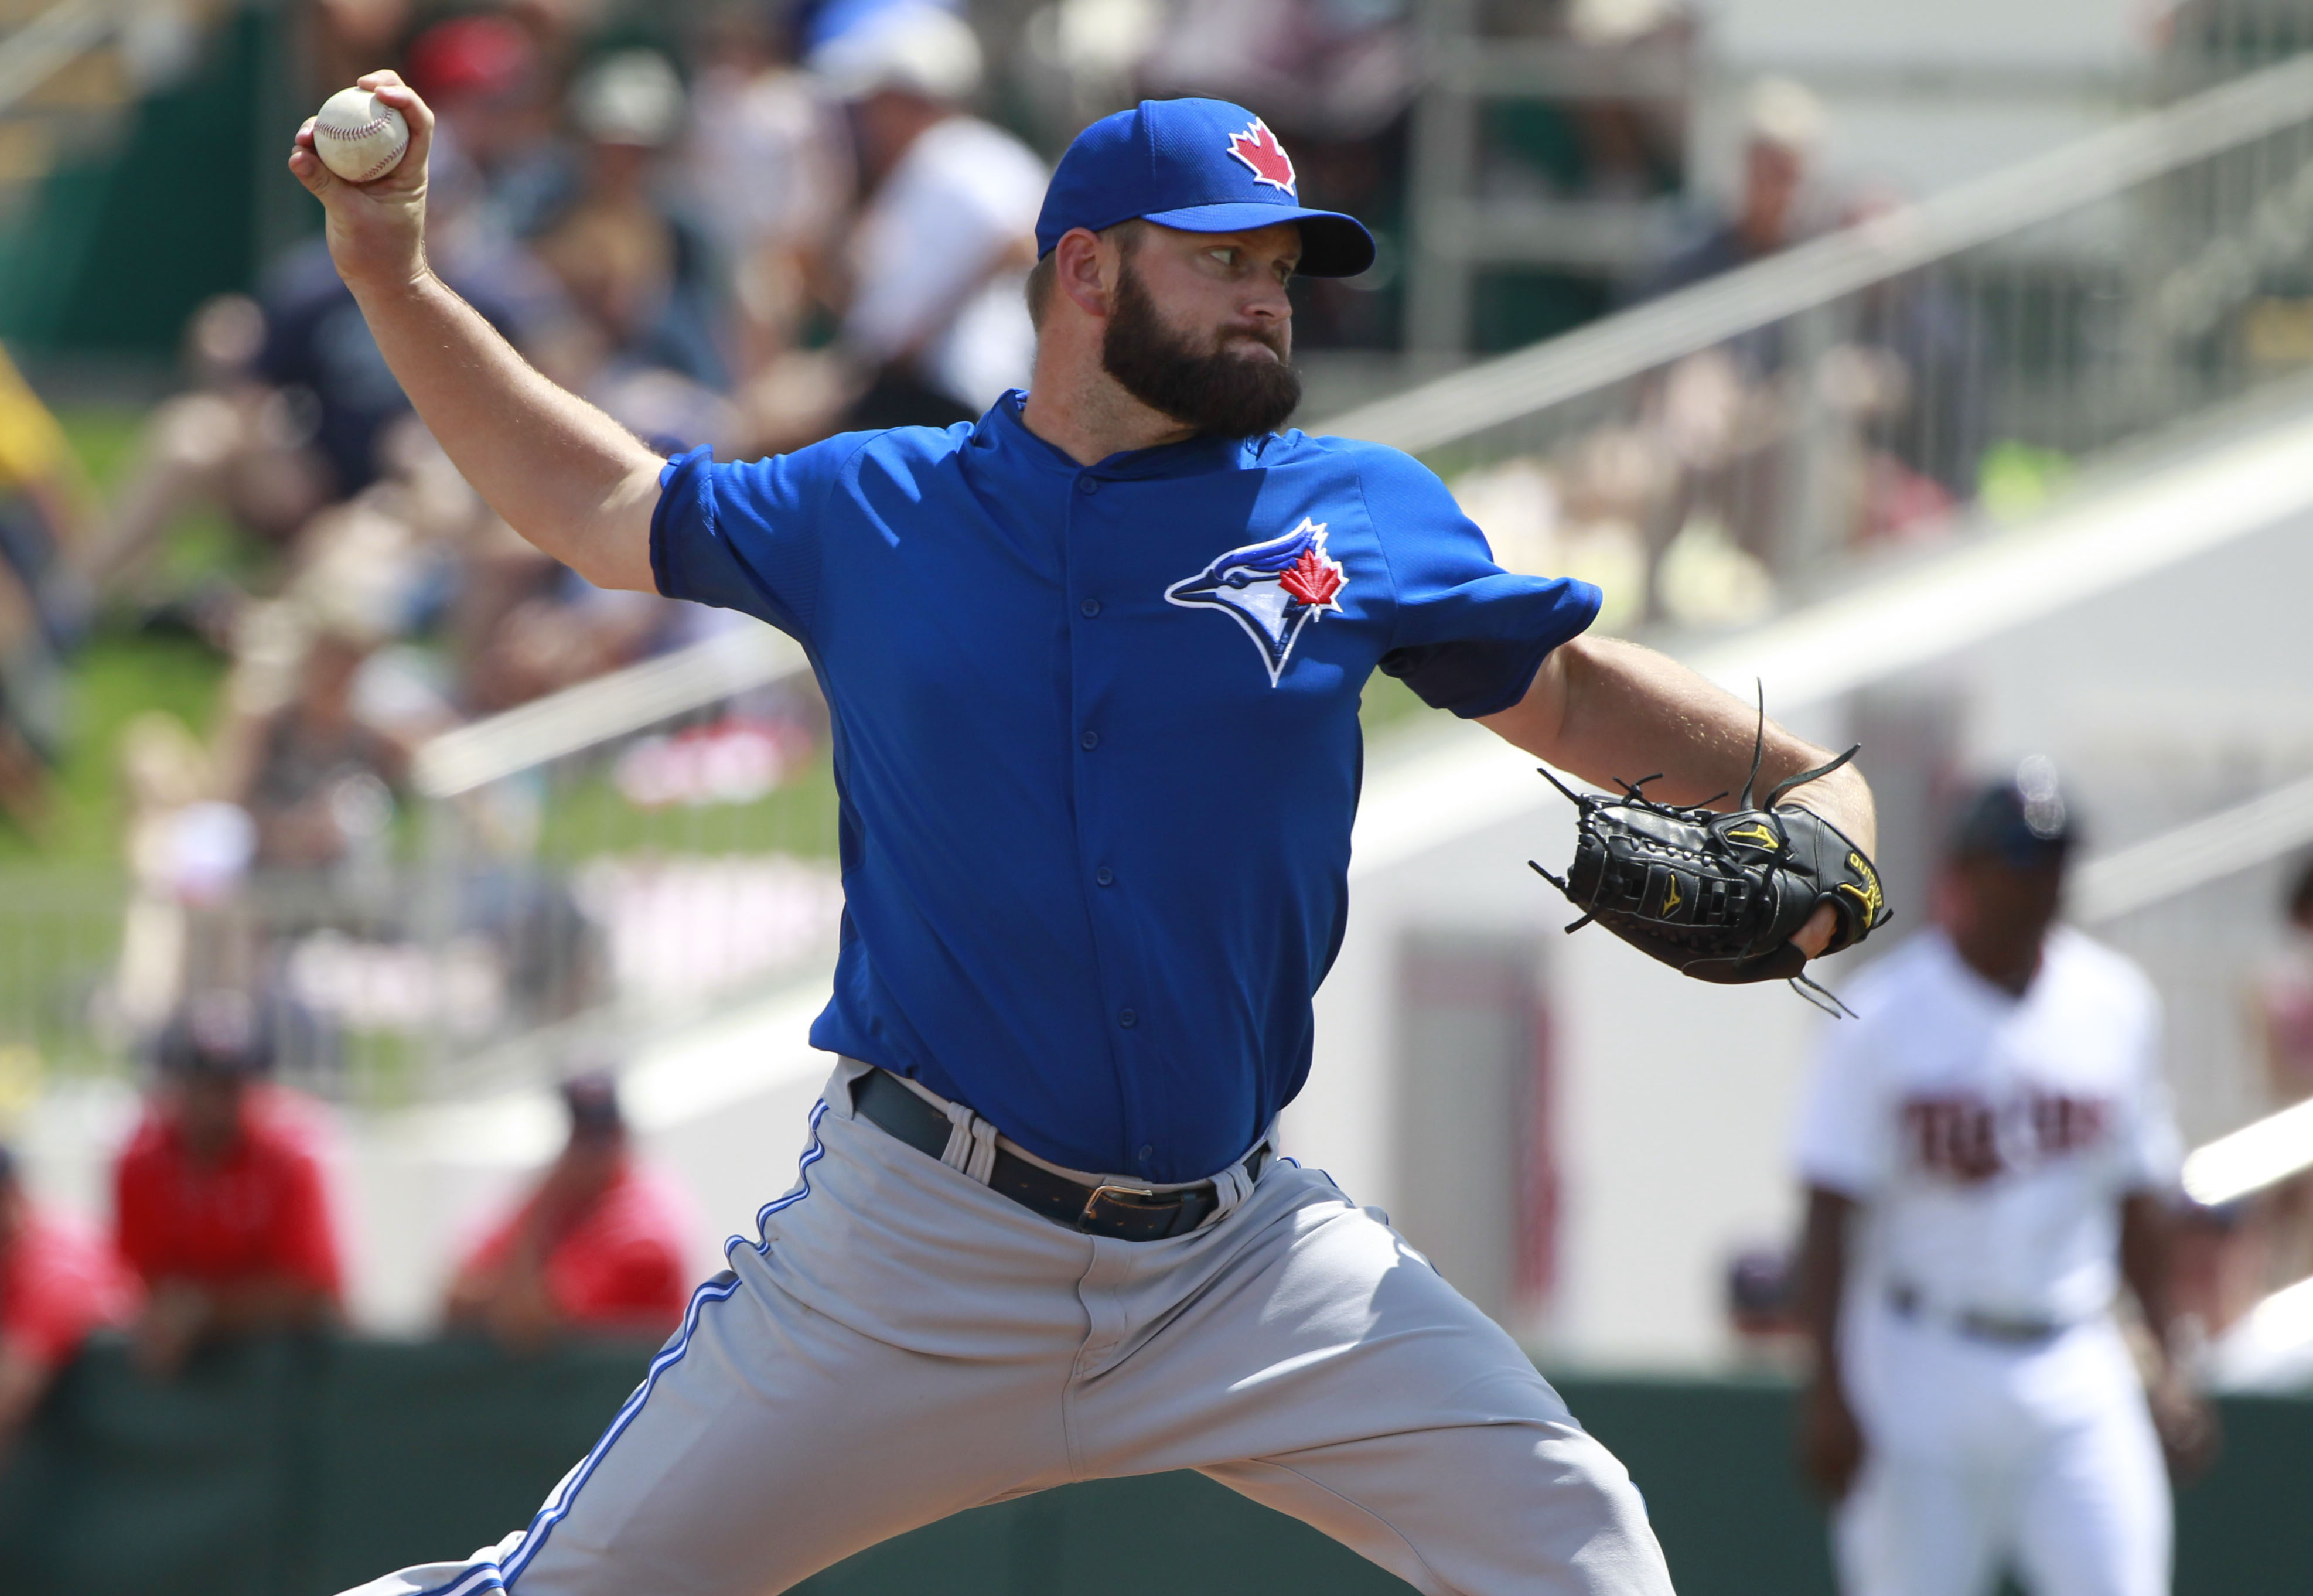 Todd Redmond pitched 5 solid innings of relief in Buffalo's win